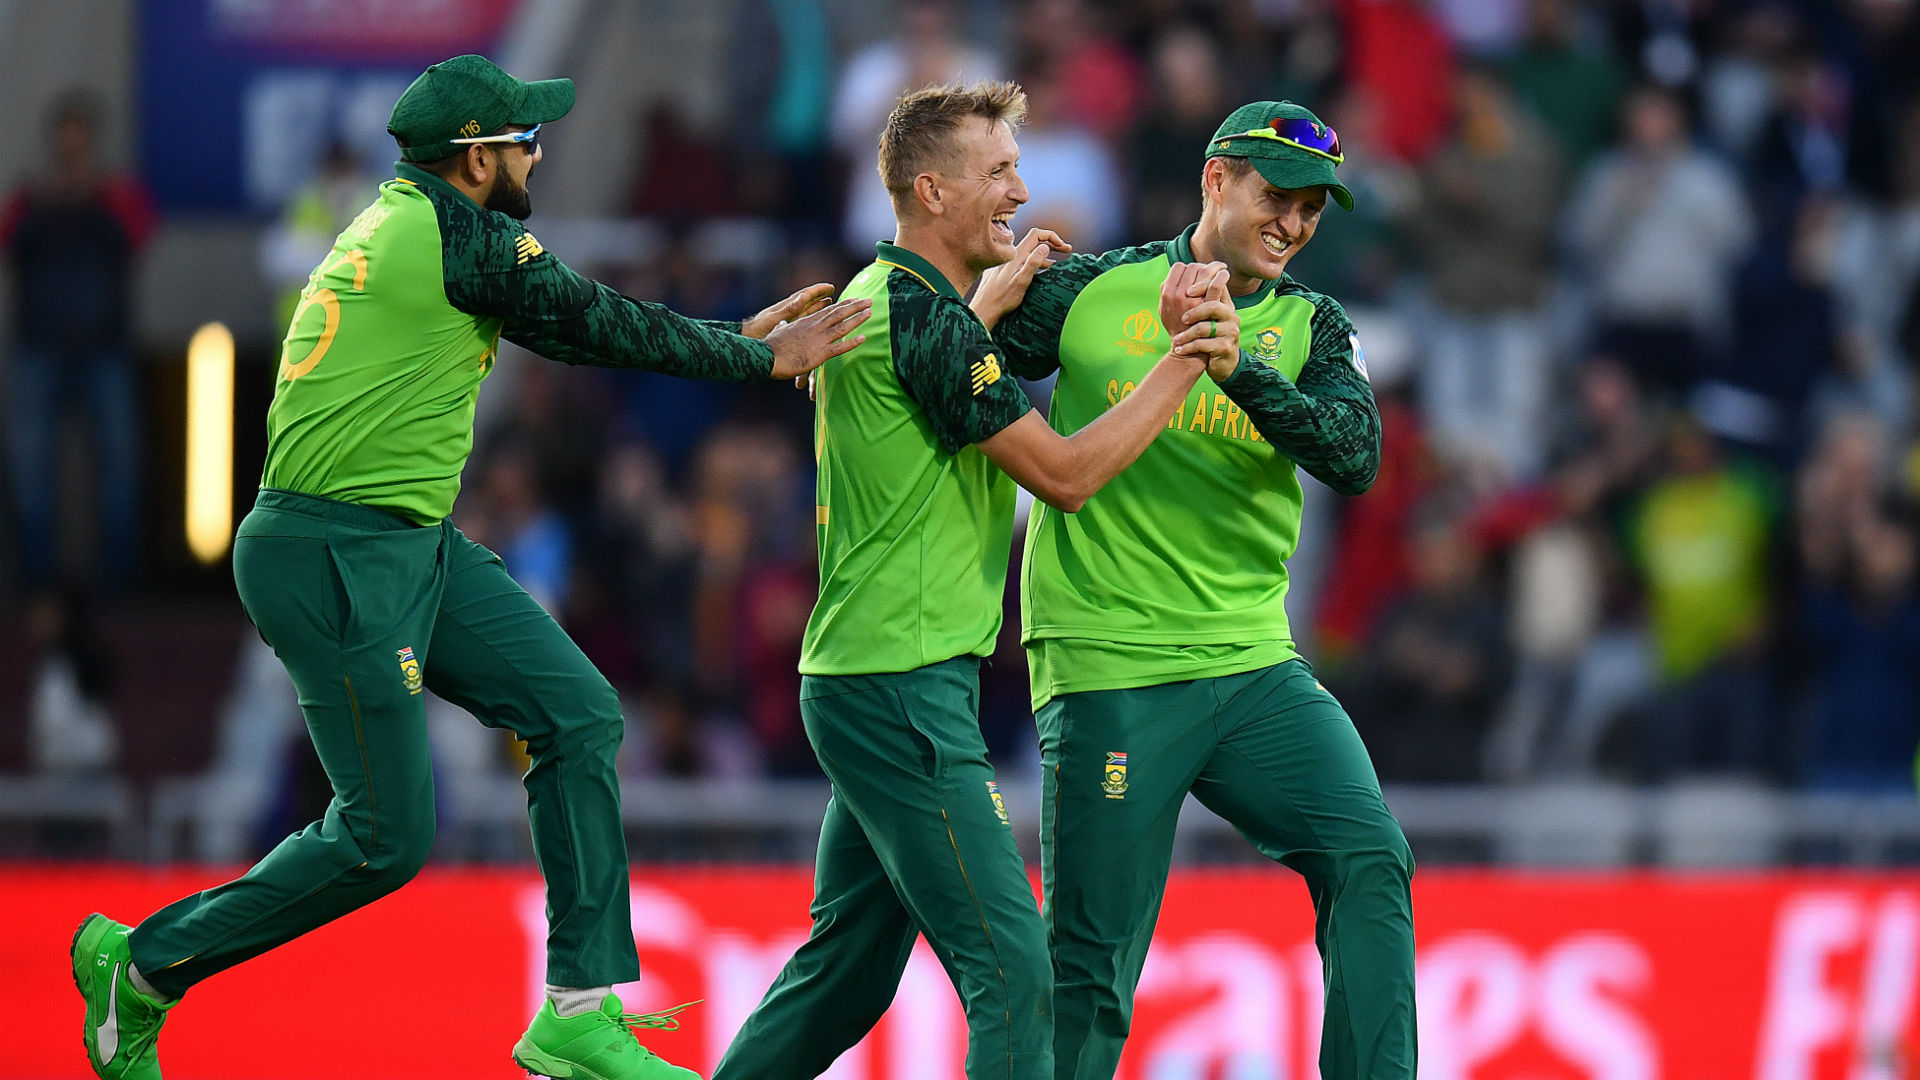 Fired-up Proteas land parting blow on wounded Australia